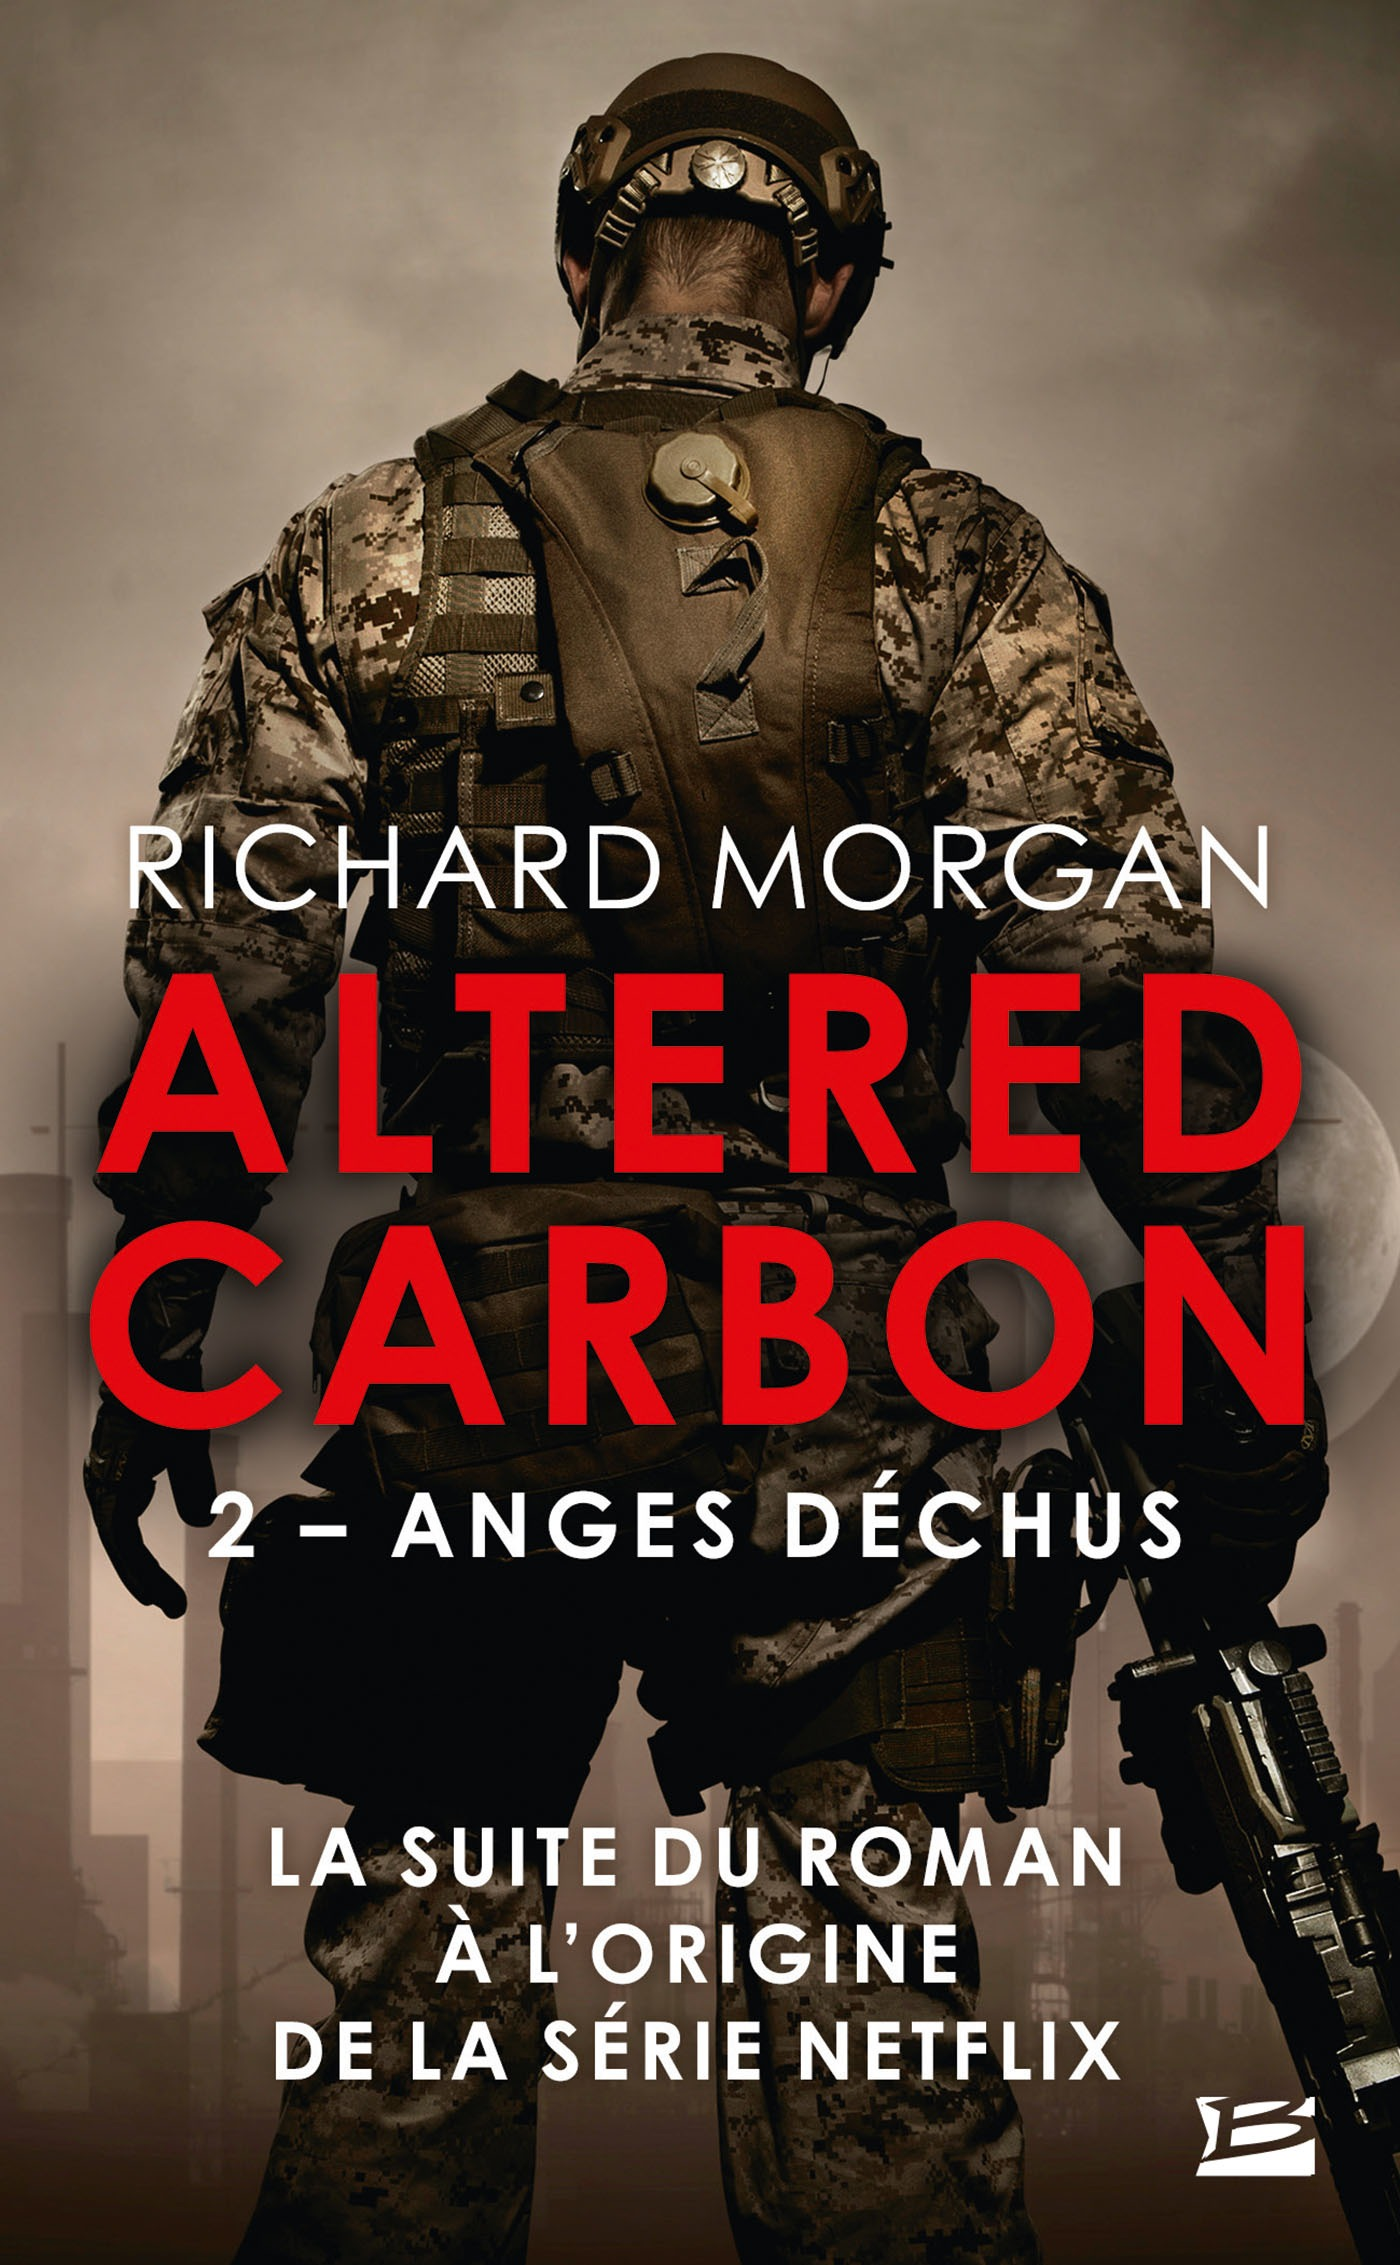 Anges déchus, ALTERED CARBON, T2